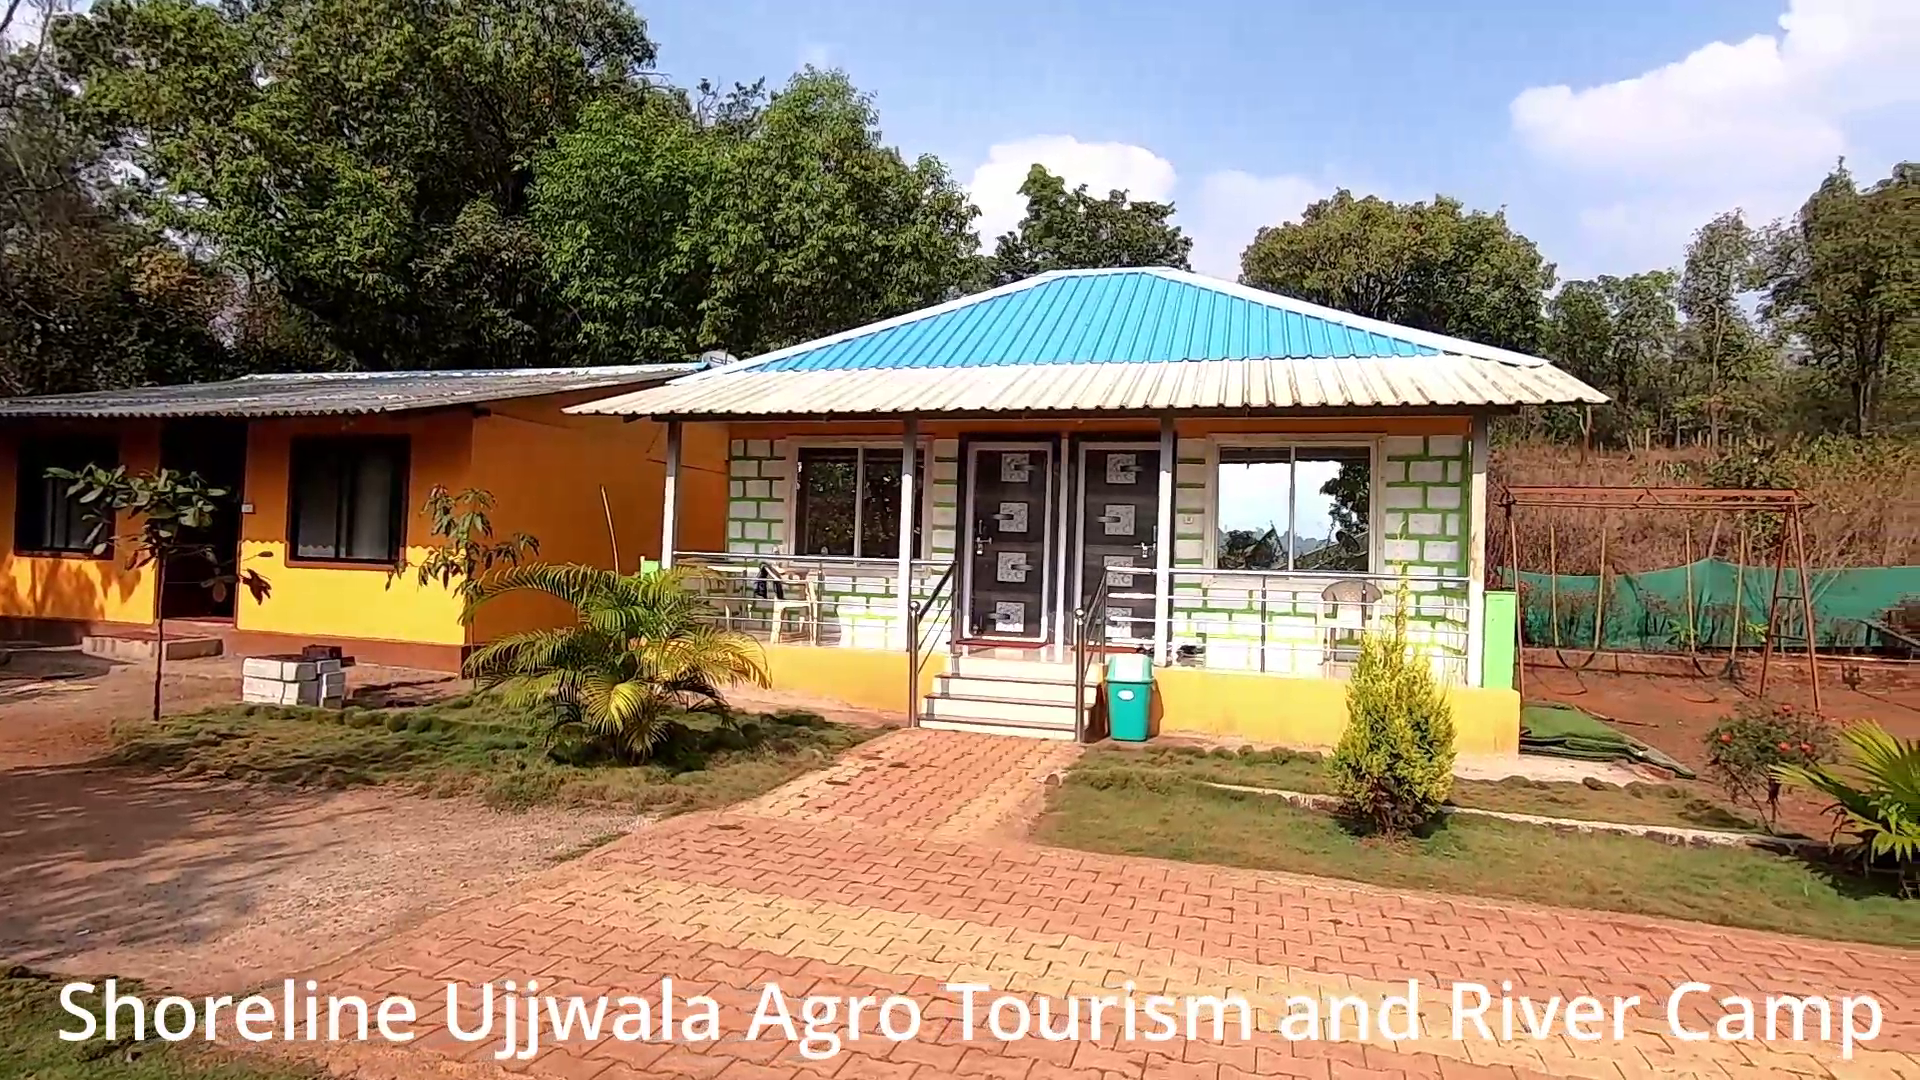 Shoreline Ujjwala Agro Tourism and River Camp rooms